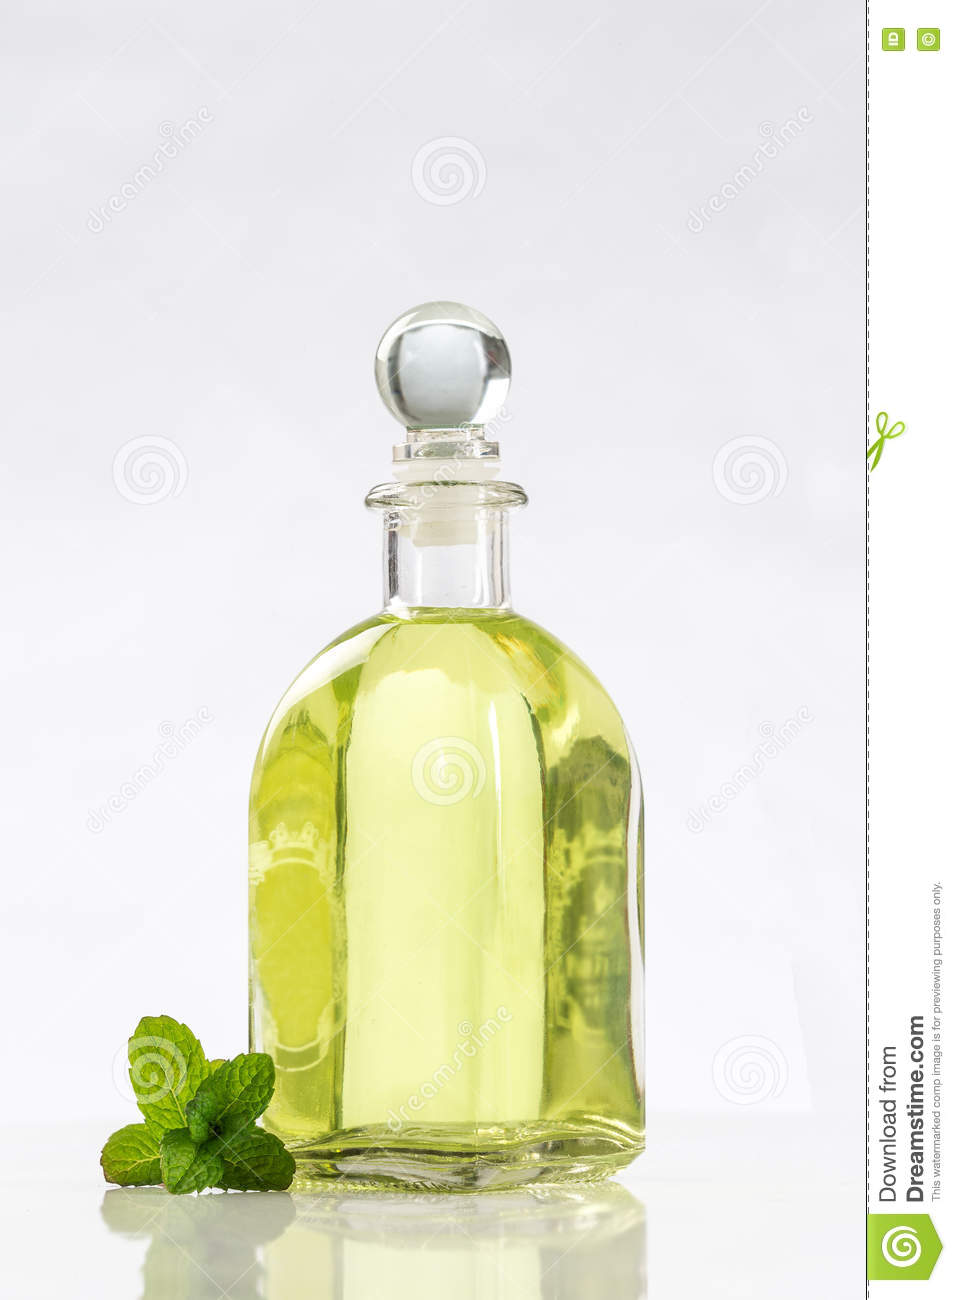 How To Make Natural Perfume With Essential Oils